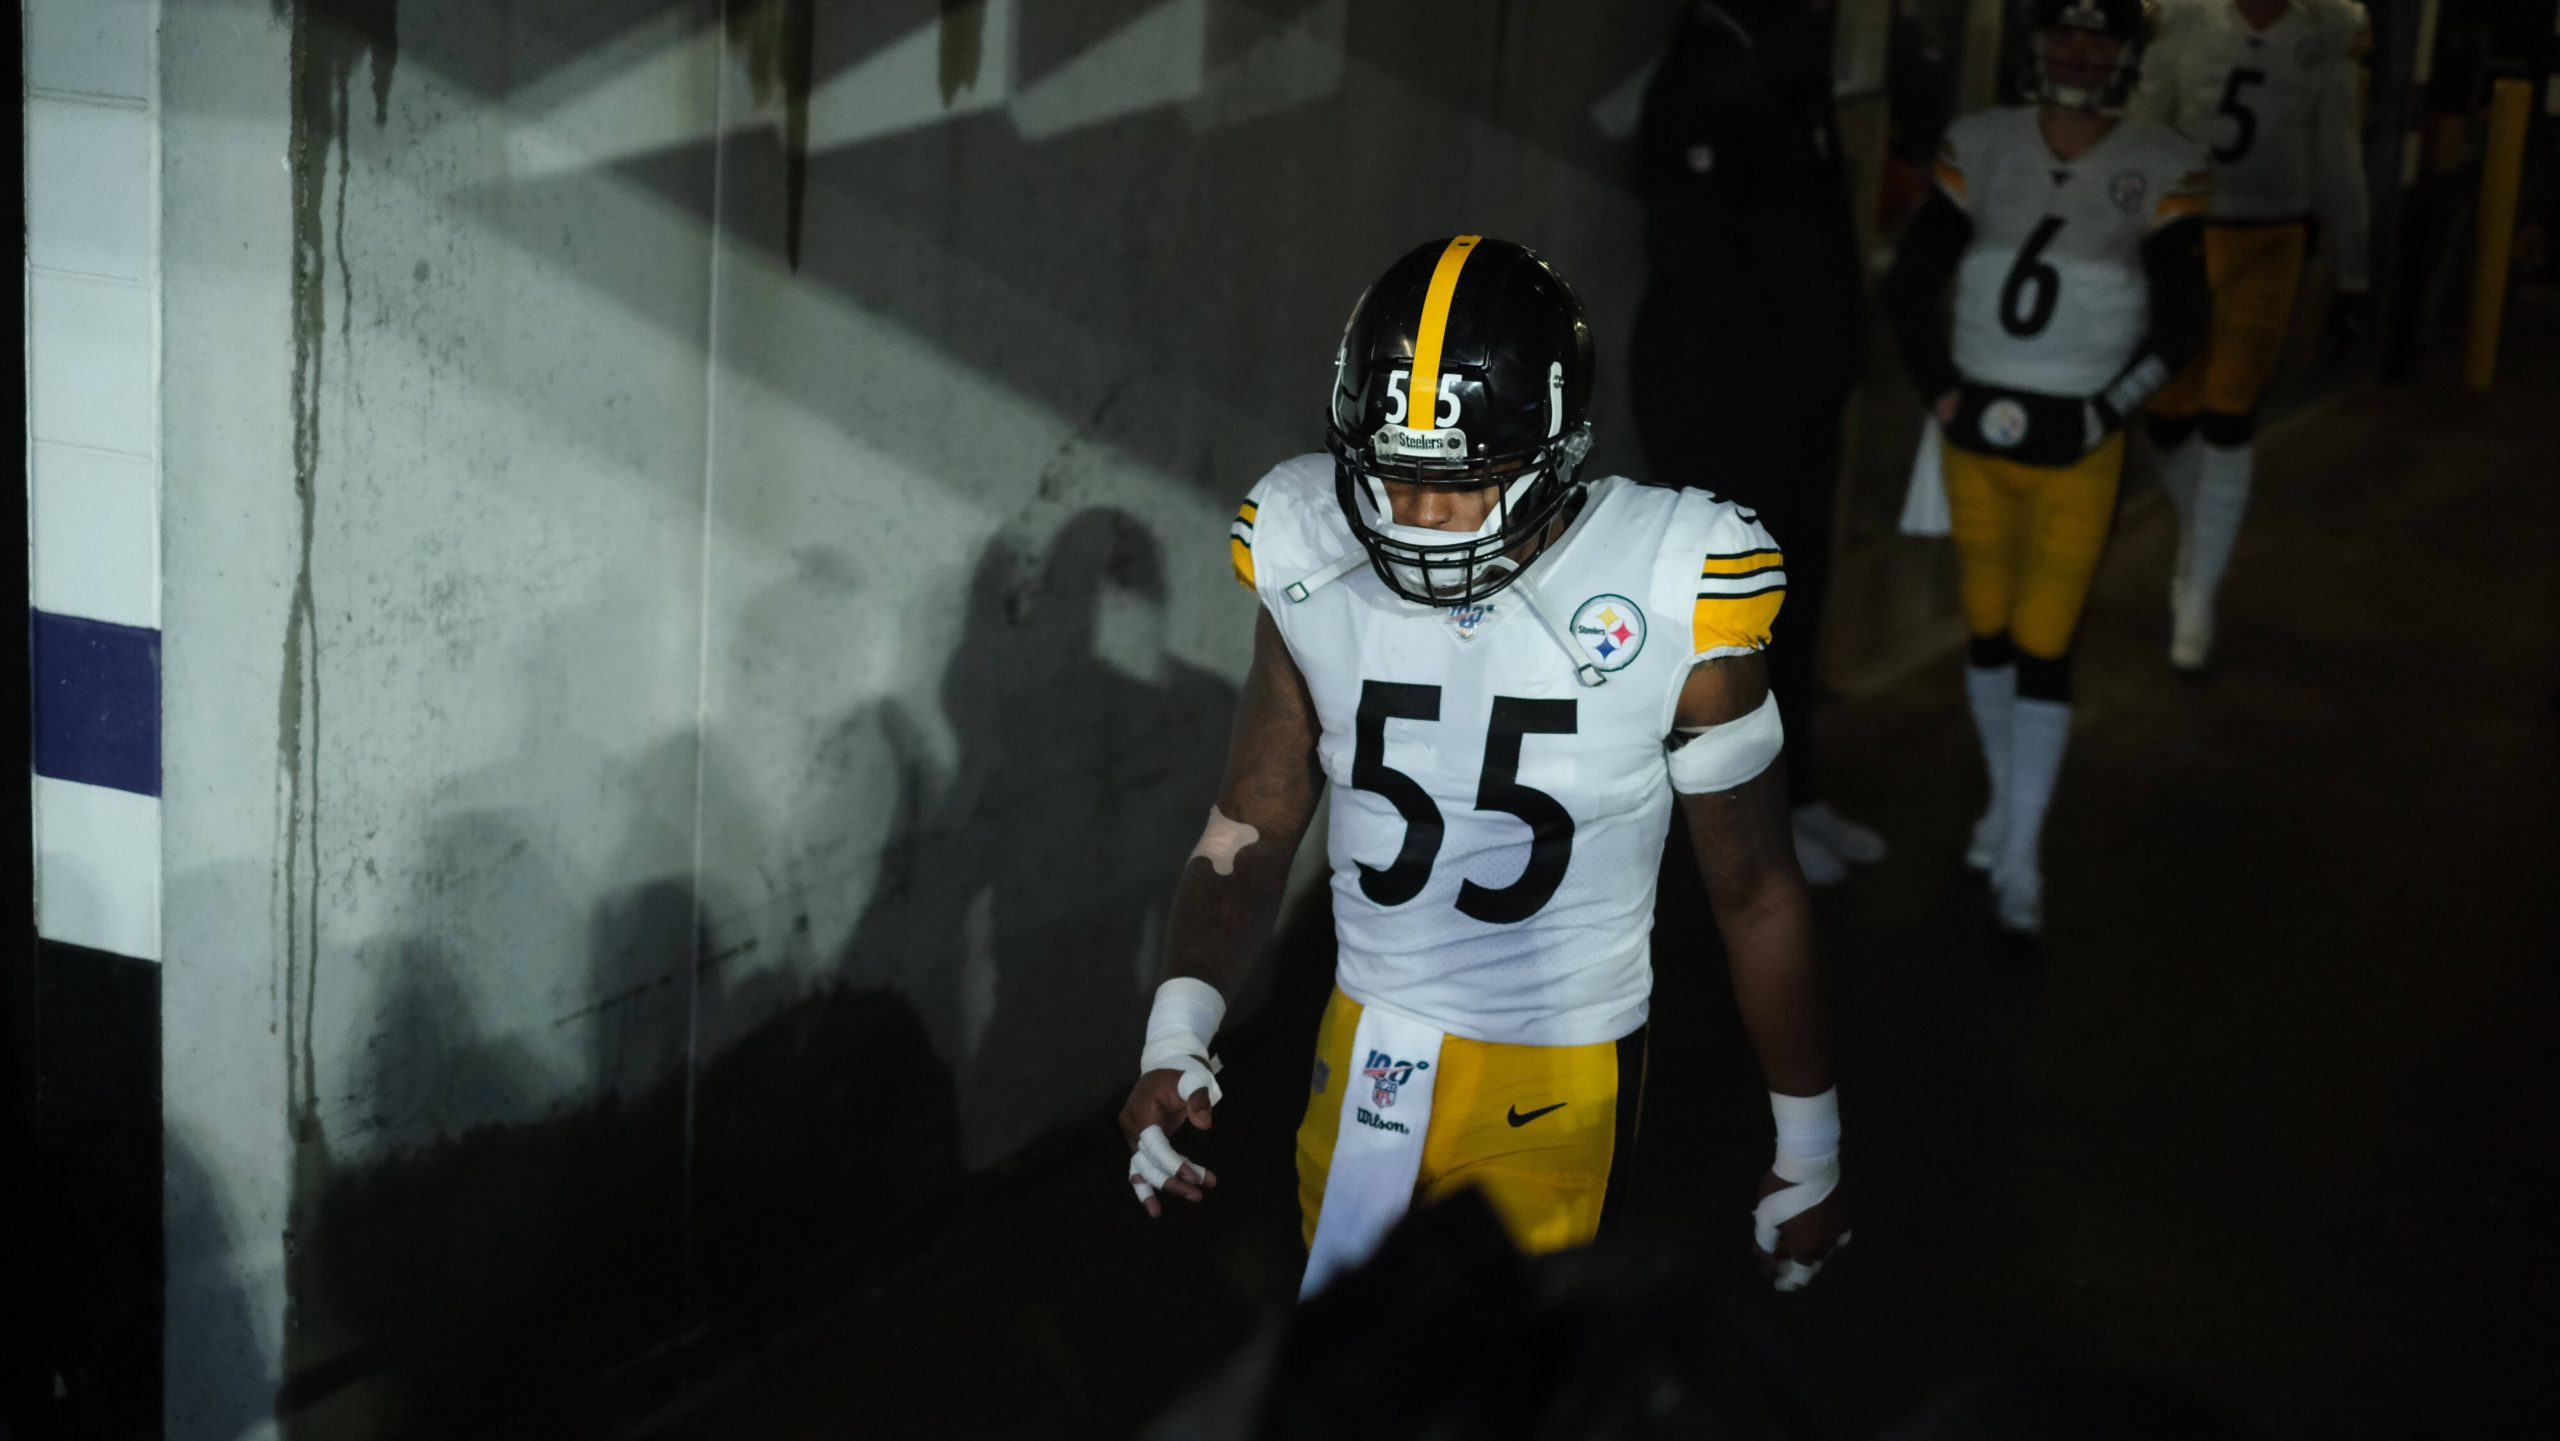 December 29th, 2019: Devin Bush 55 during the Pittsburgh Steelers vs Baltimore Ravens at M&T Bank Stadium in Baltimore,